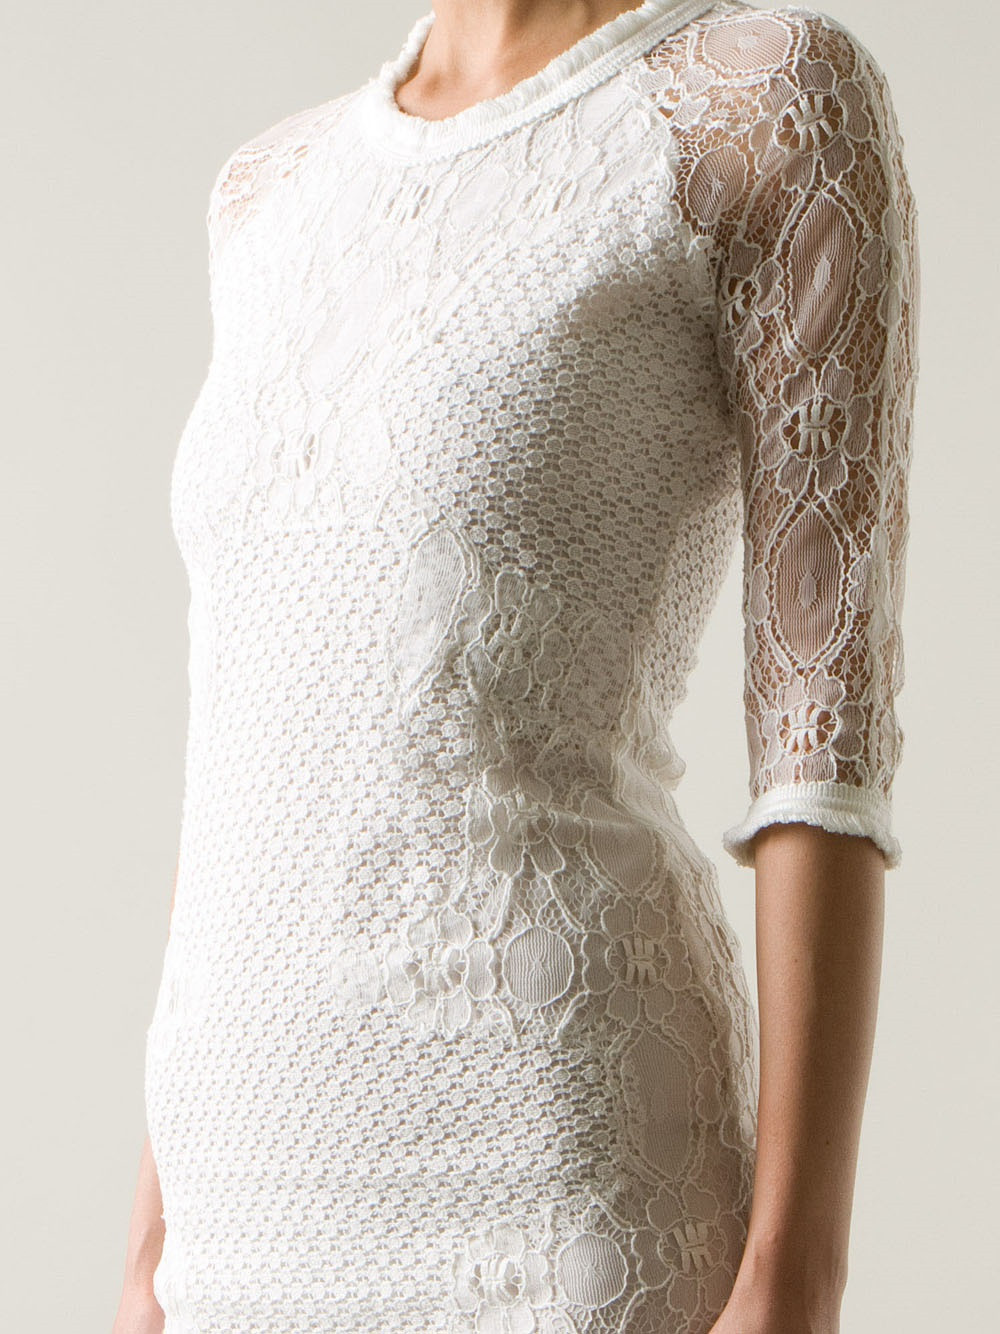 White Lace Crochet Dress Luxury Lyst Sea Lace Crochet Dress In White Of Awesome 48 Photos White Lace Crochet Dress